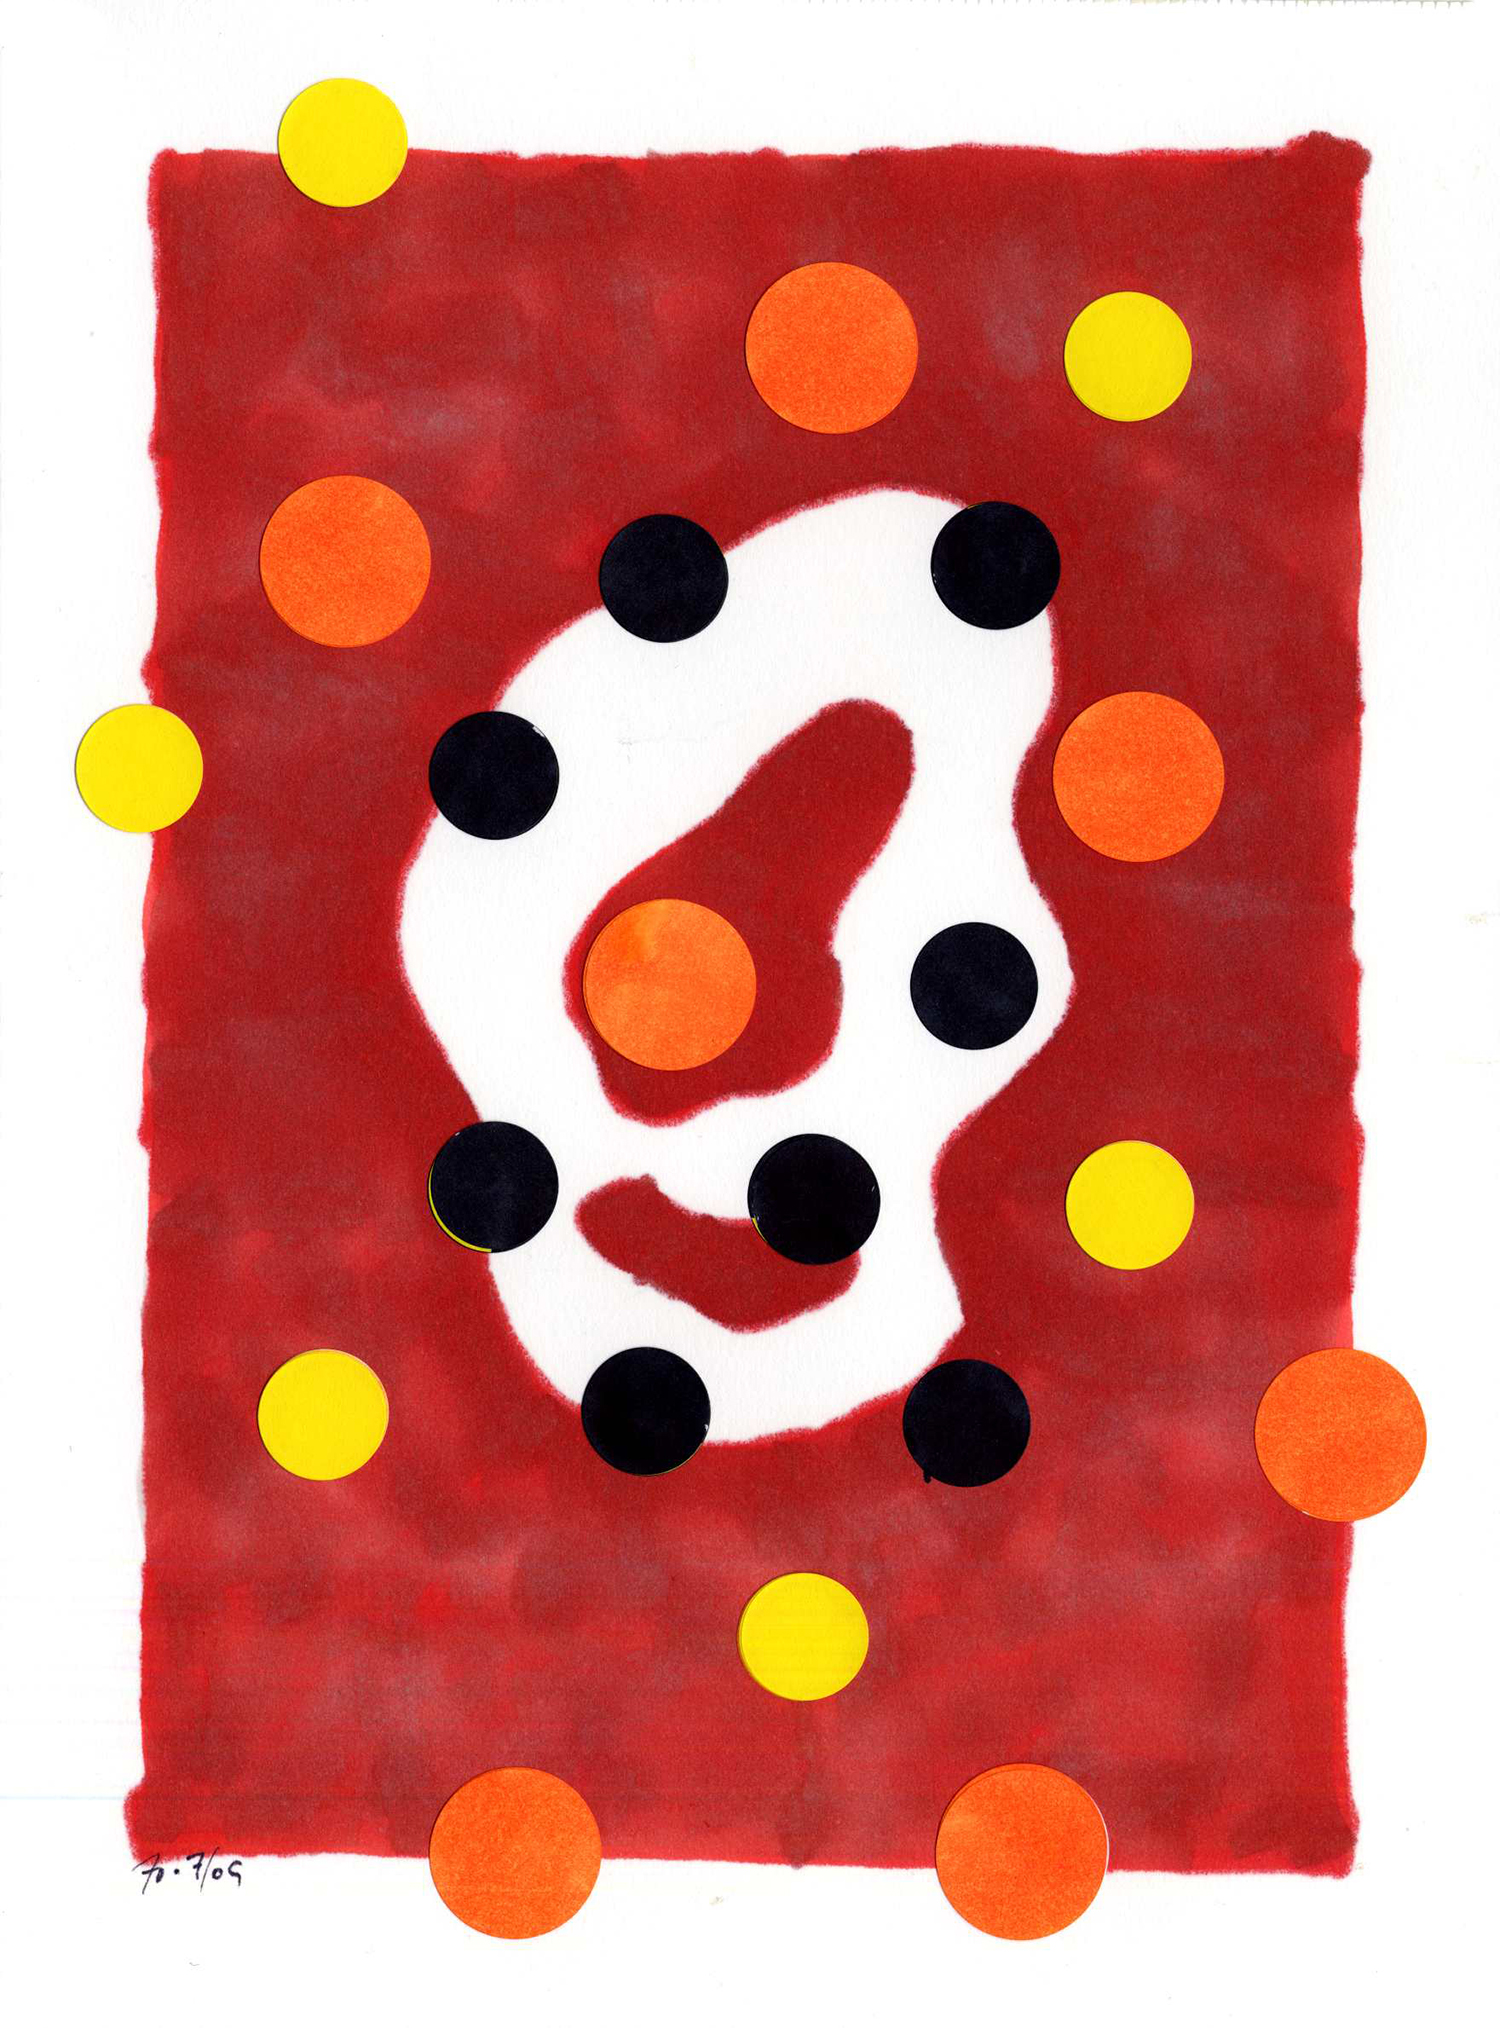 dwg09_018  , 2009, mixed media on paper, 12 x 9 in.